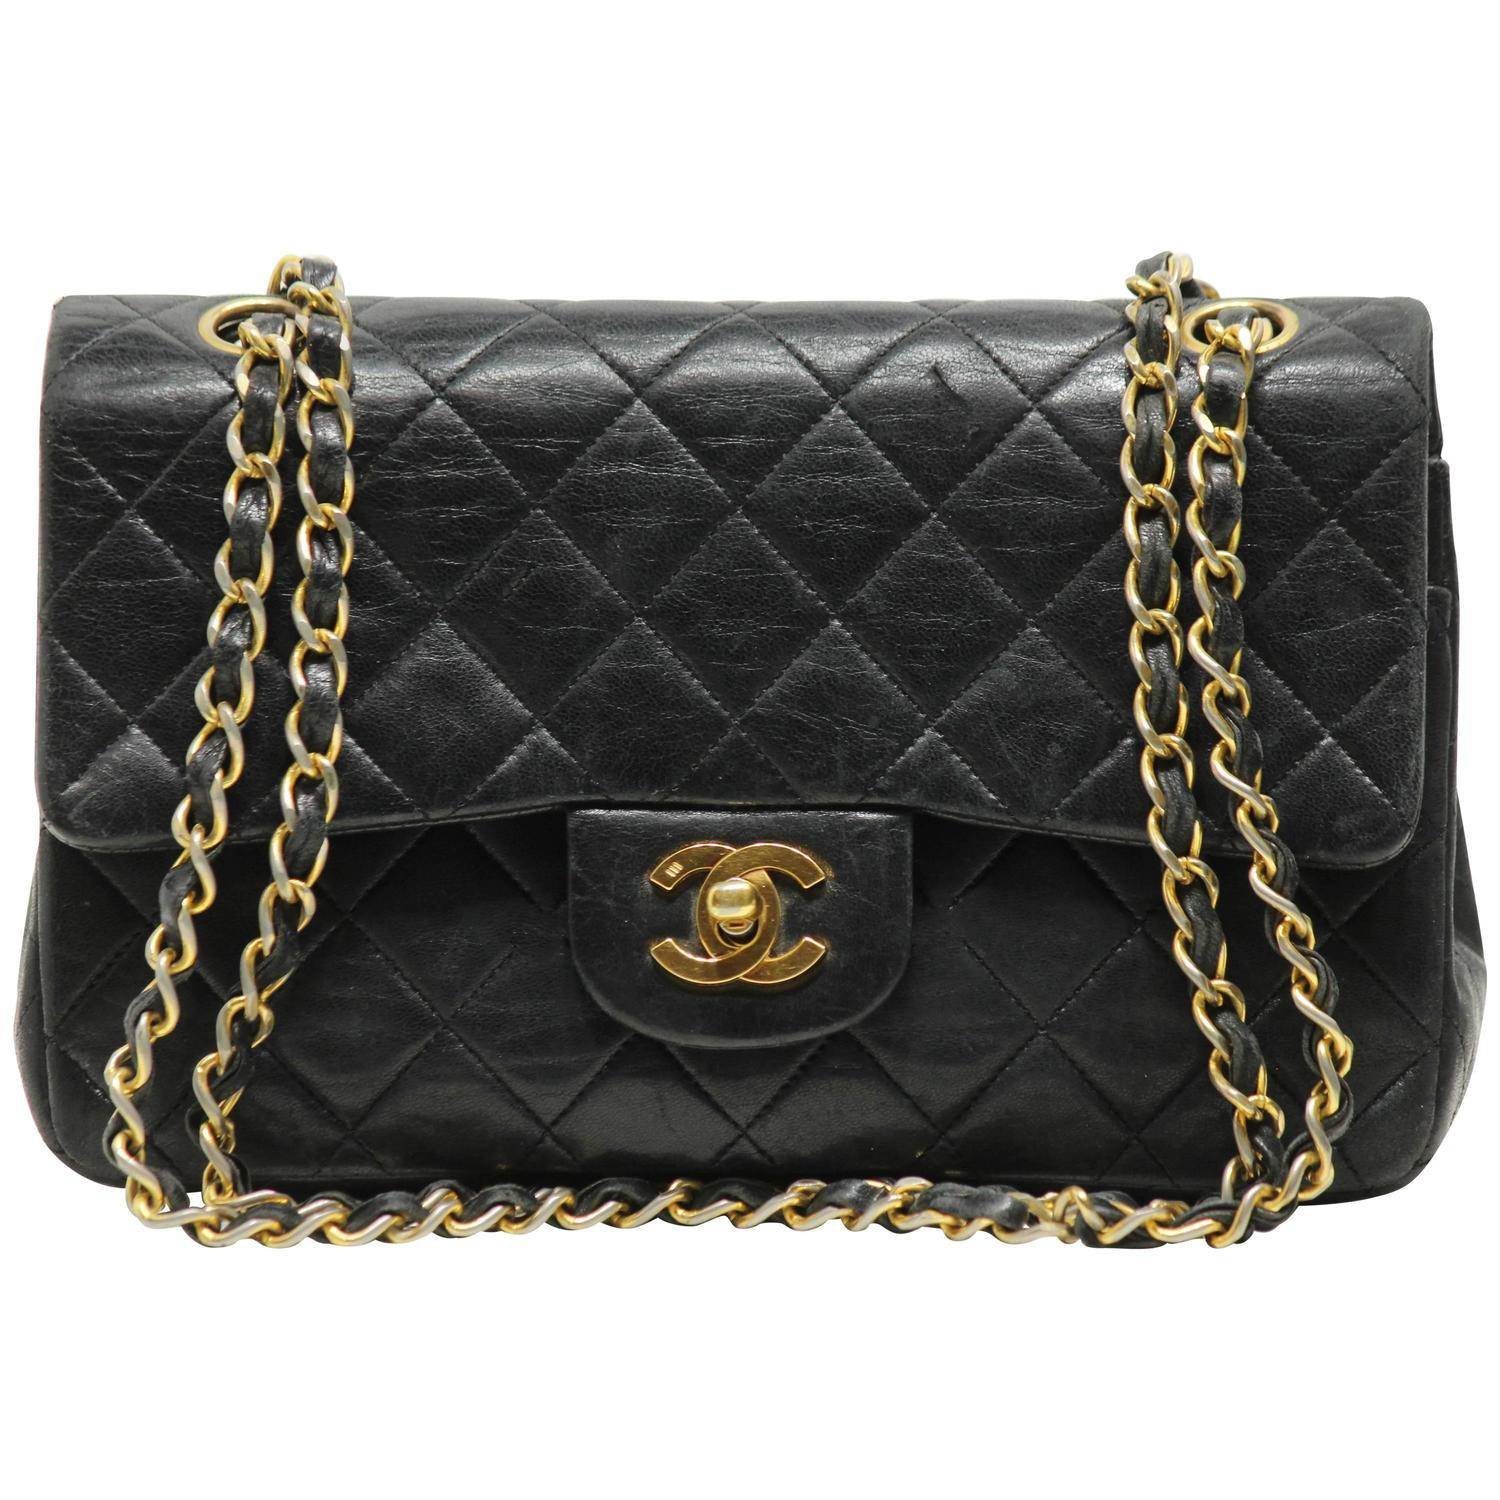 460d2a2c68e156 Iconic Chanel Handbags | Stanford Center for Opportunity Policy in ...